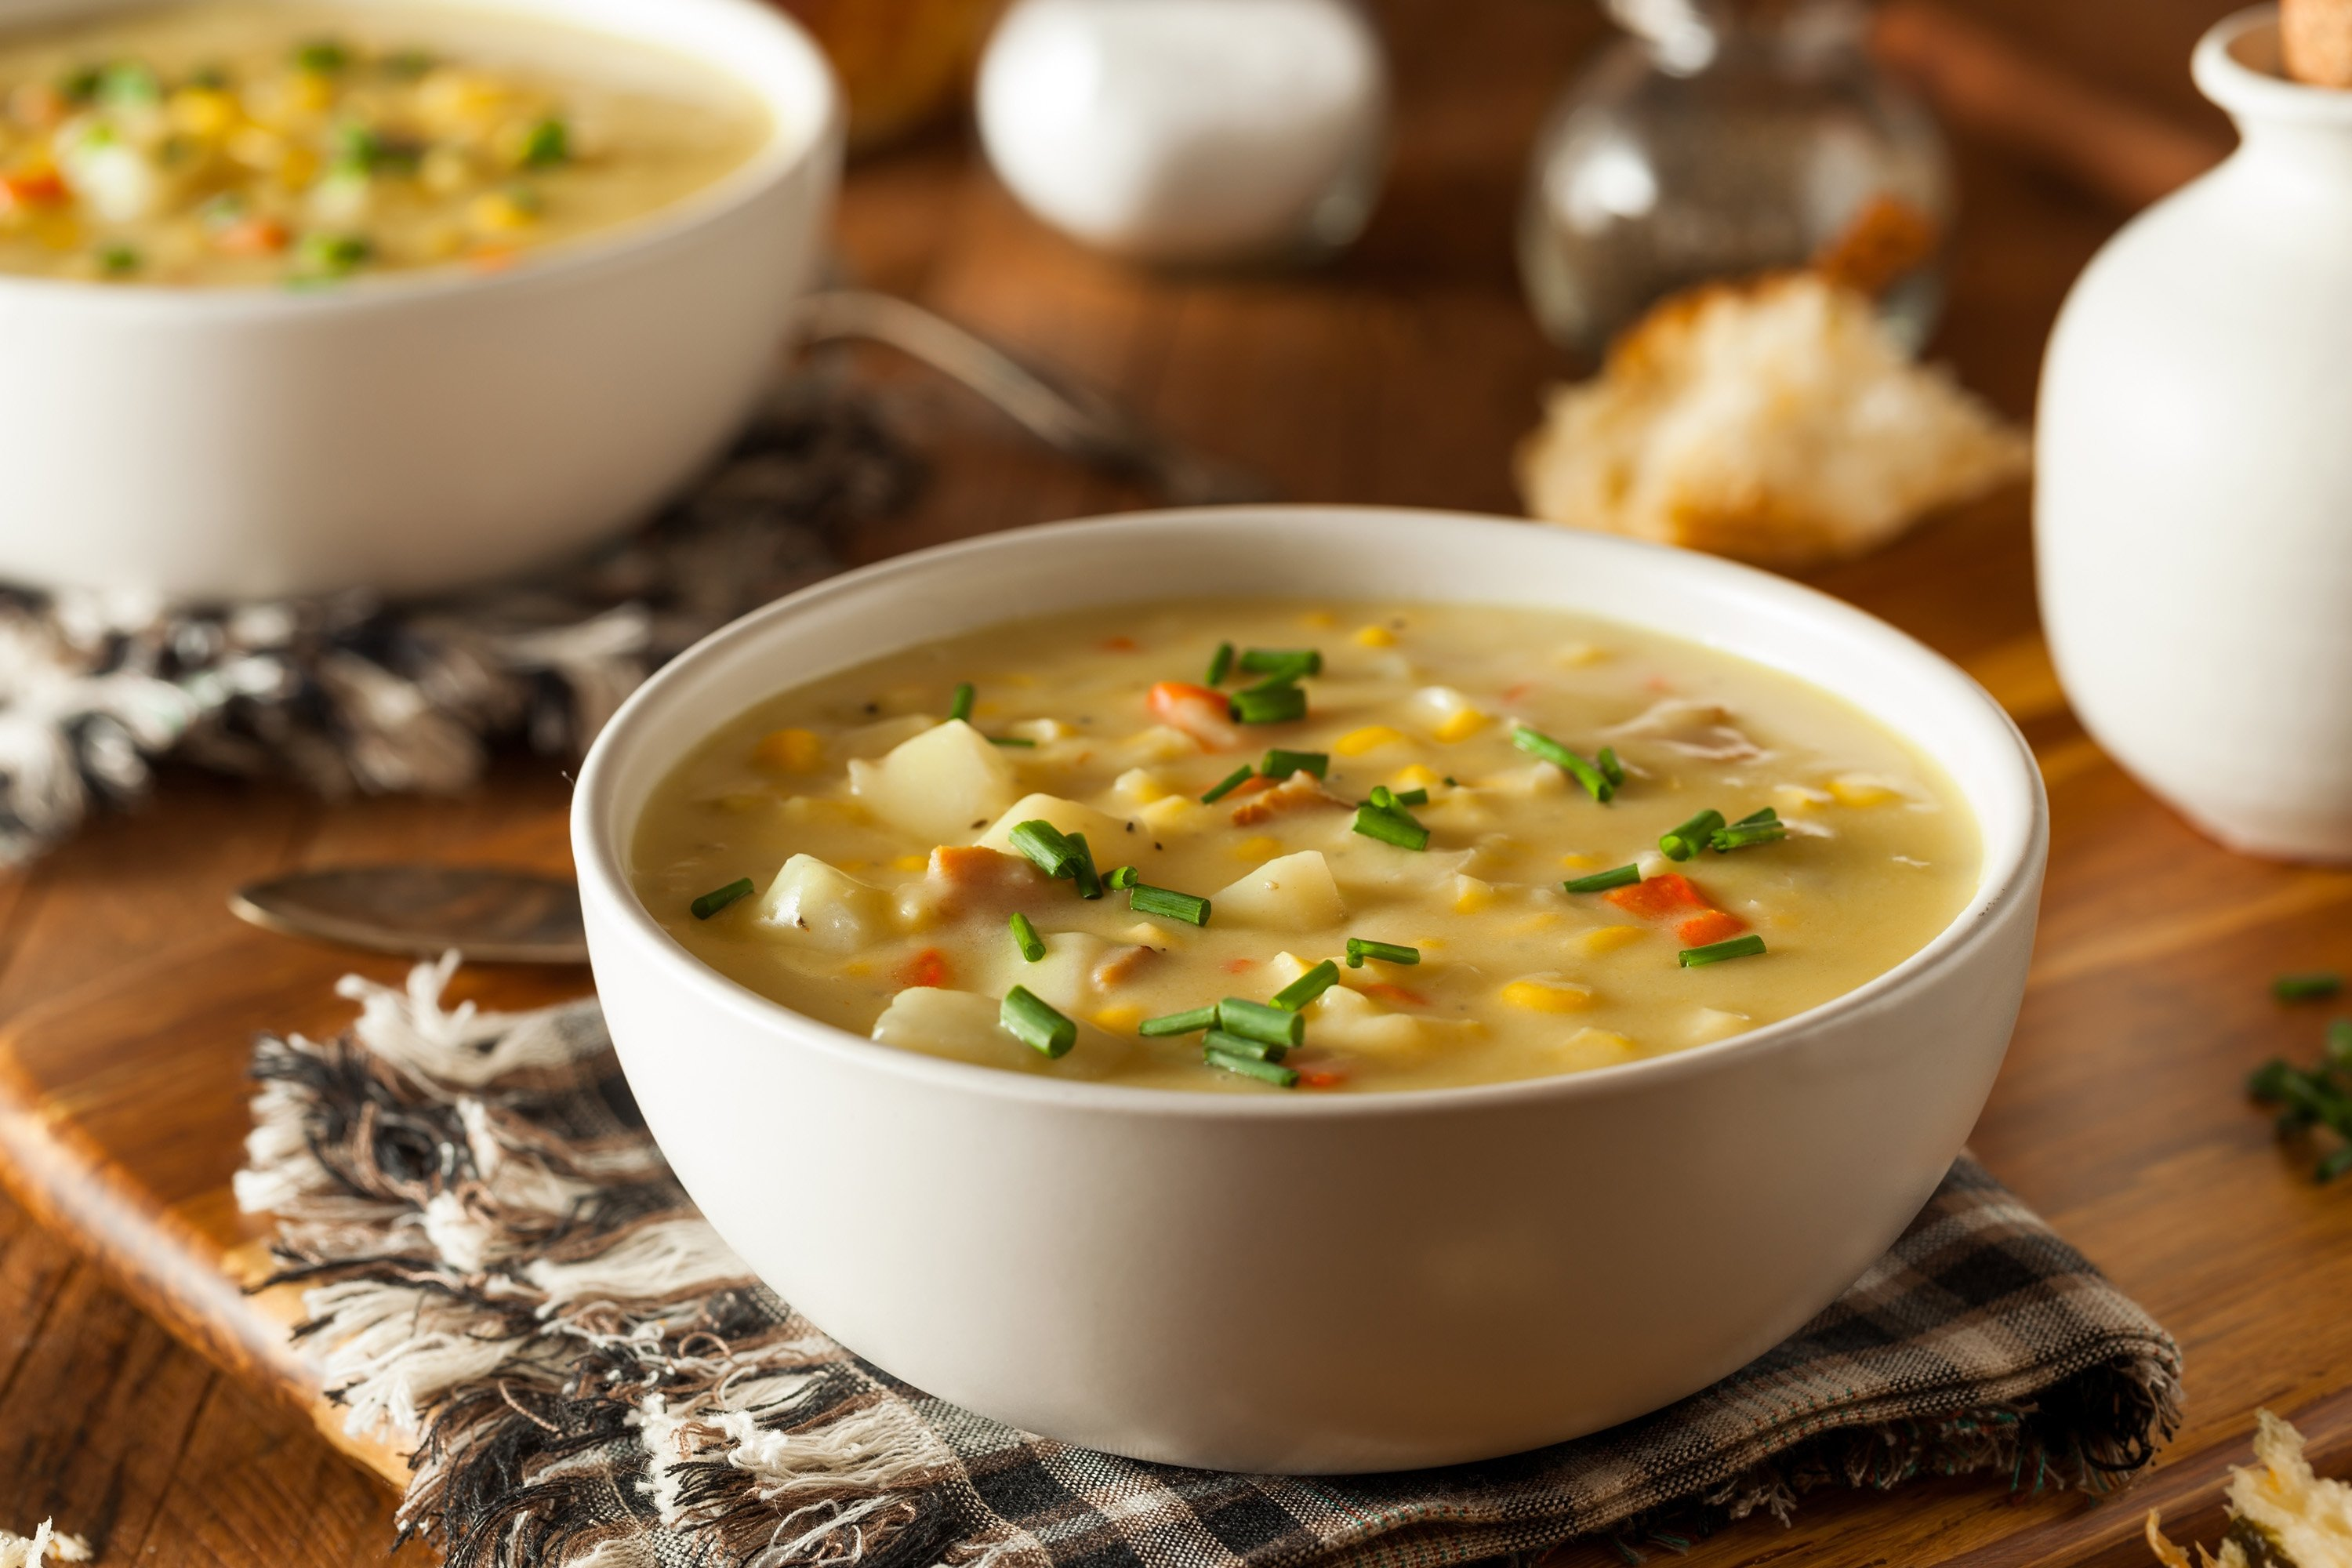 While making Black Sea-style cracked corn soup, you can always add vegetables or meat if you want. (iStock Photo)